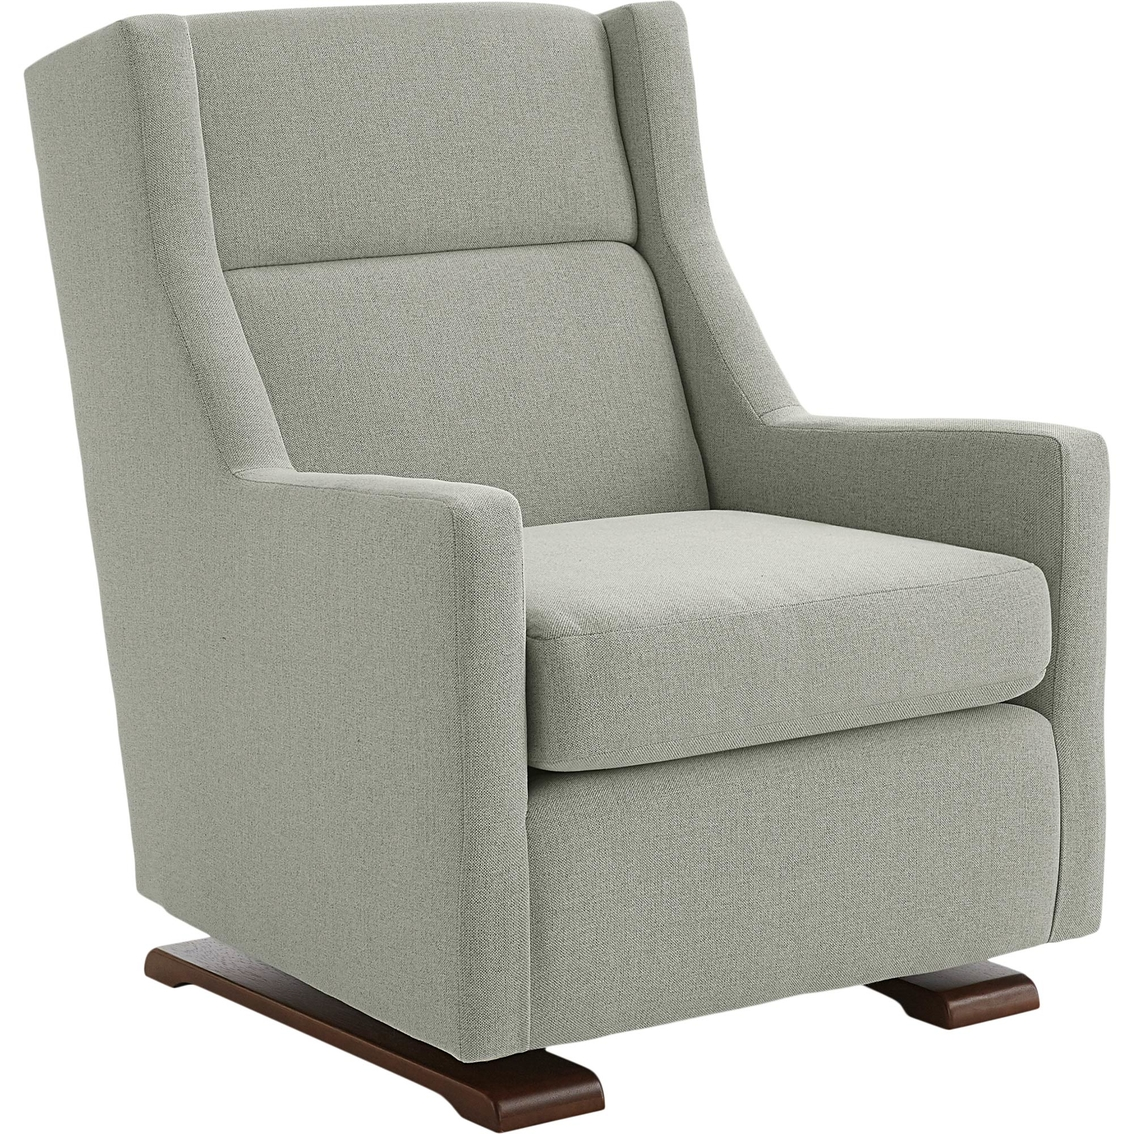 Best Home Mandini Swivel Glider Chairs Recliners Home